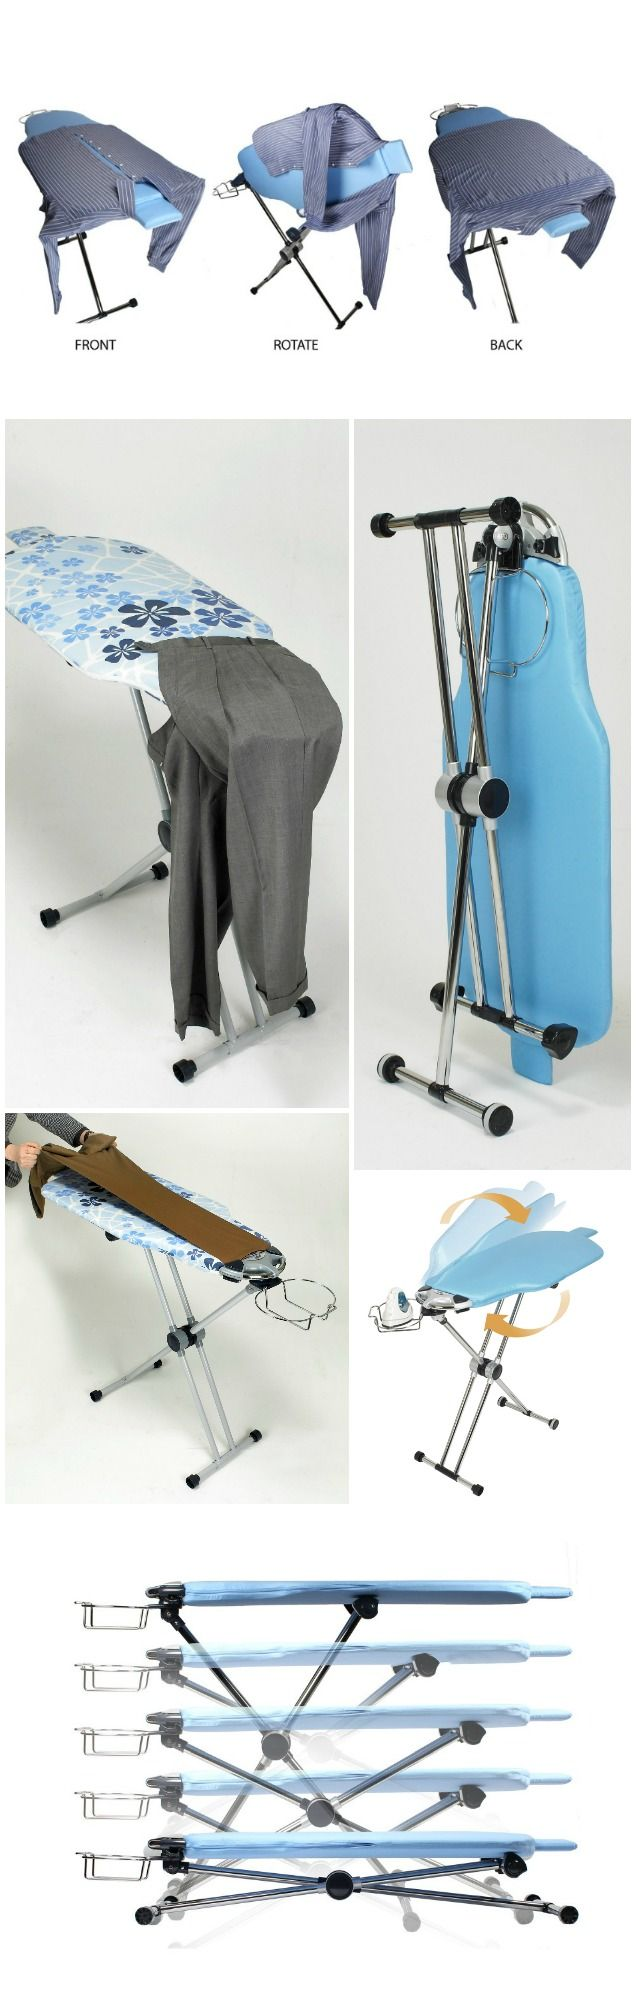 Dazzl 360 is the first rotating ironing board that lets you flip the ironing board over to iron both sides of the shirt or blouse.